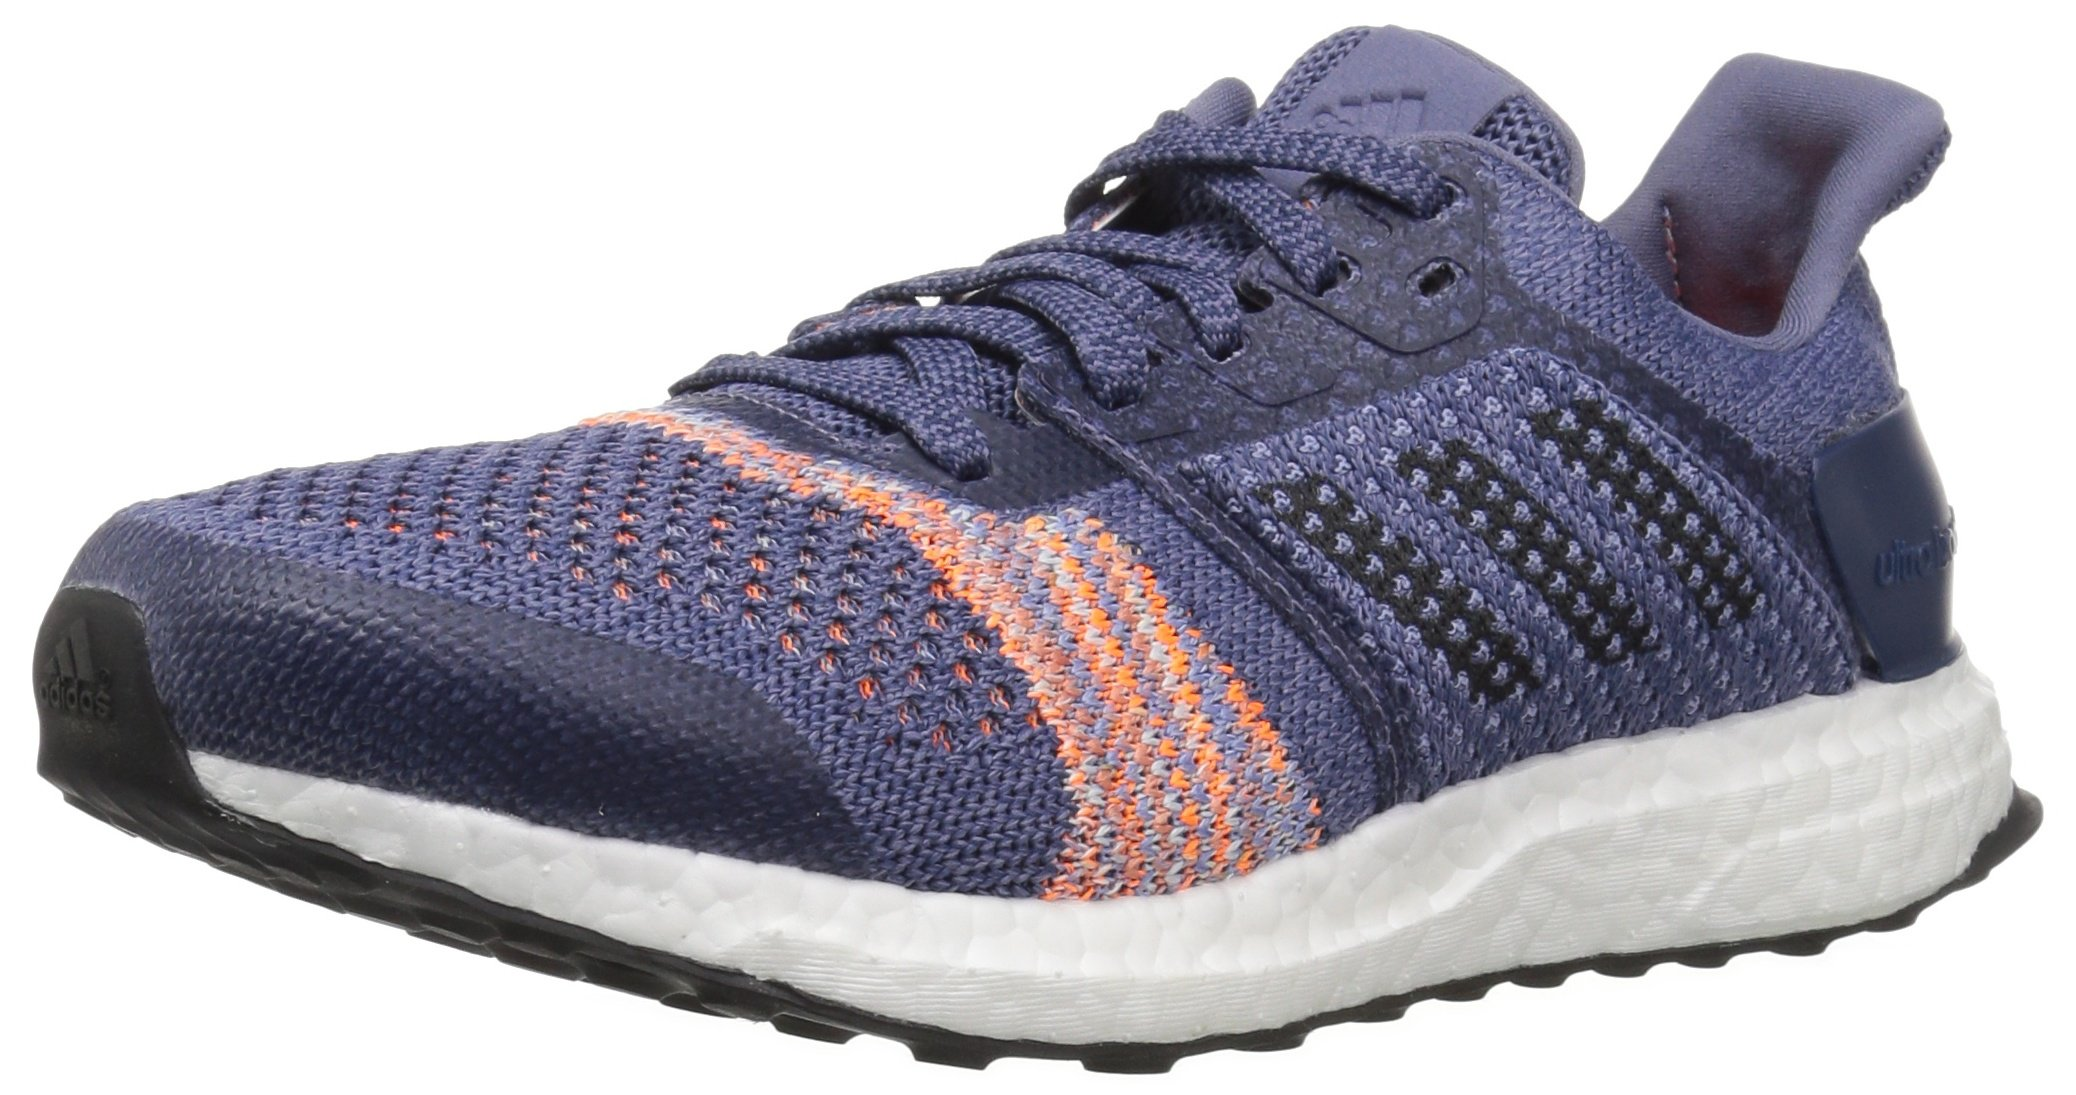 5f95cd22e5098 Galleon - Adidas Women s Ultraboost ST